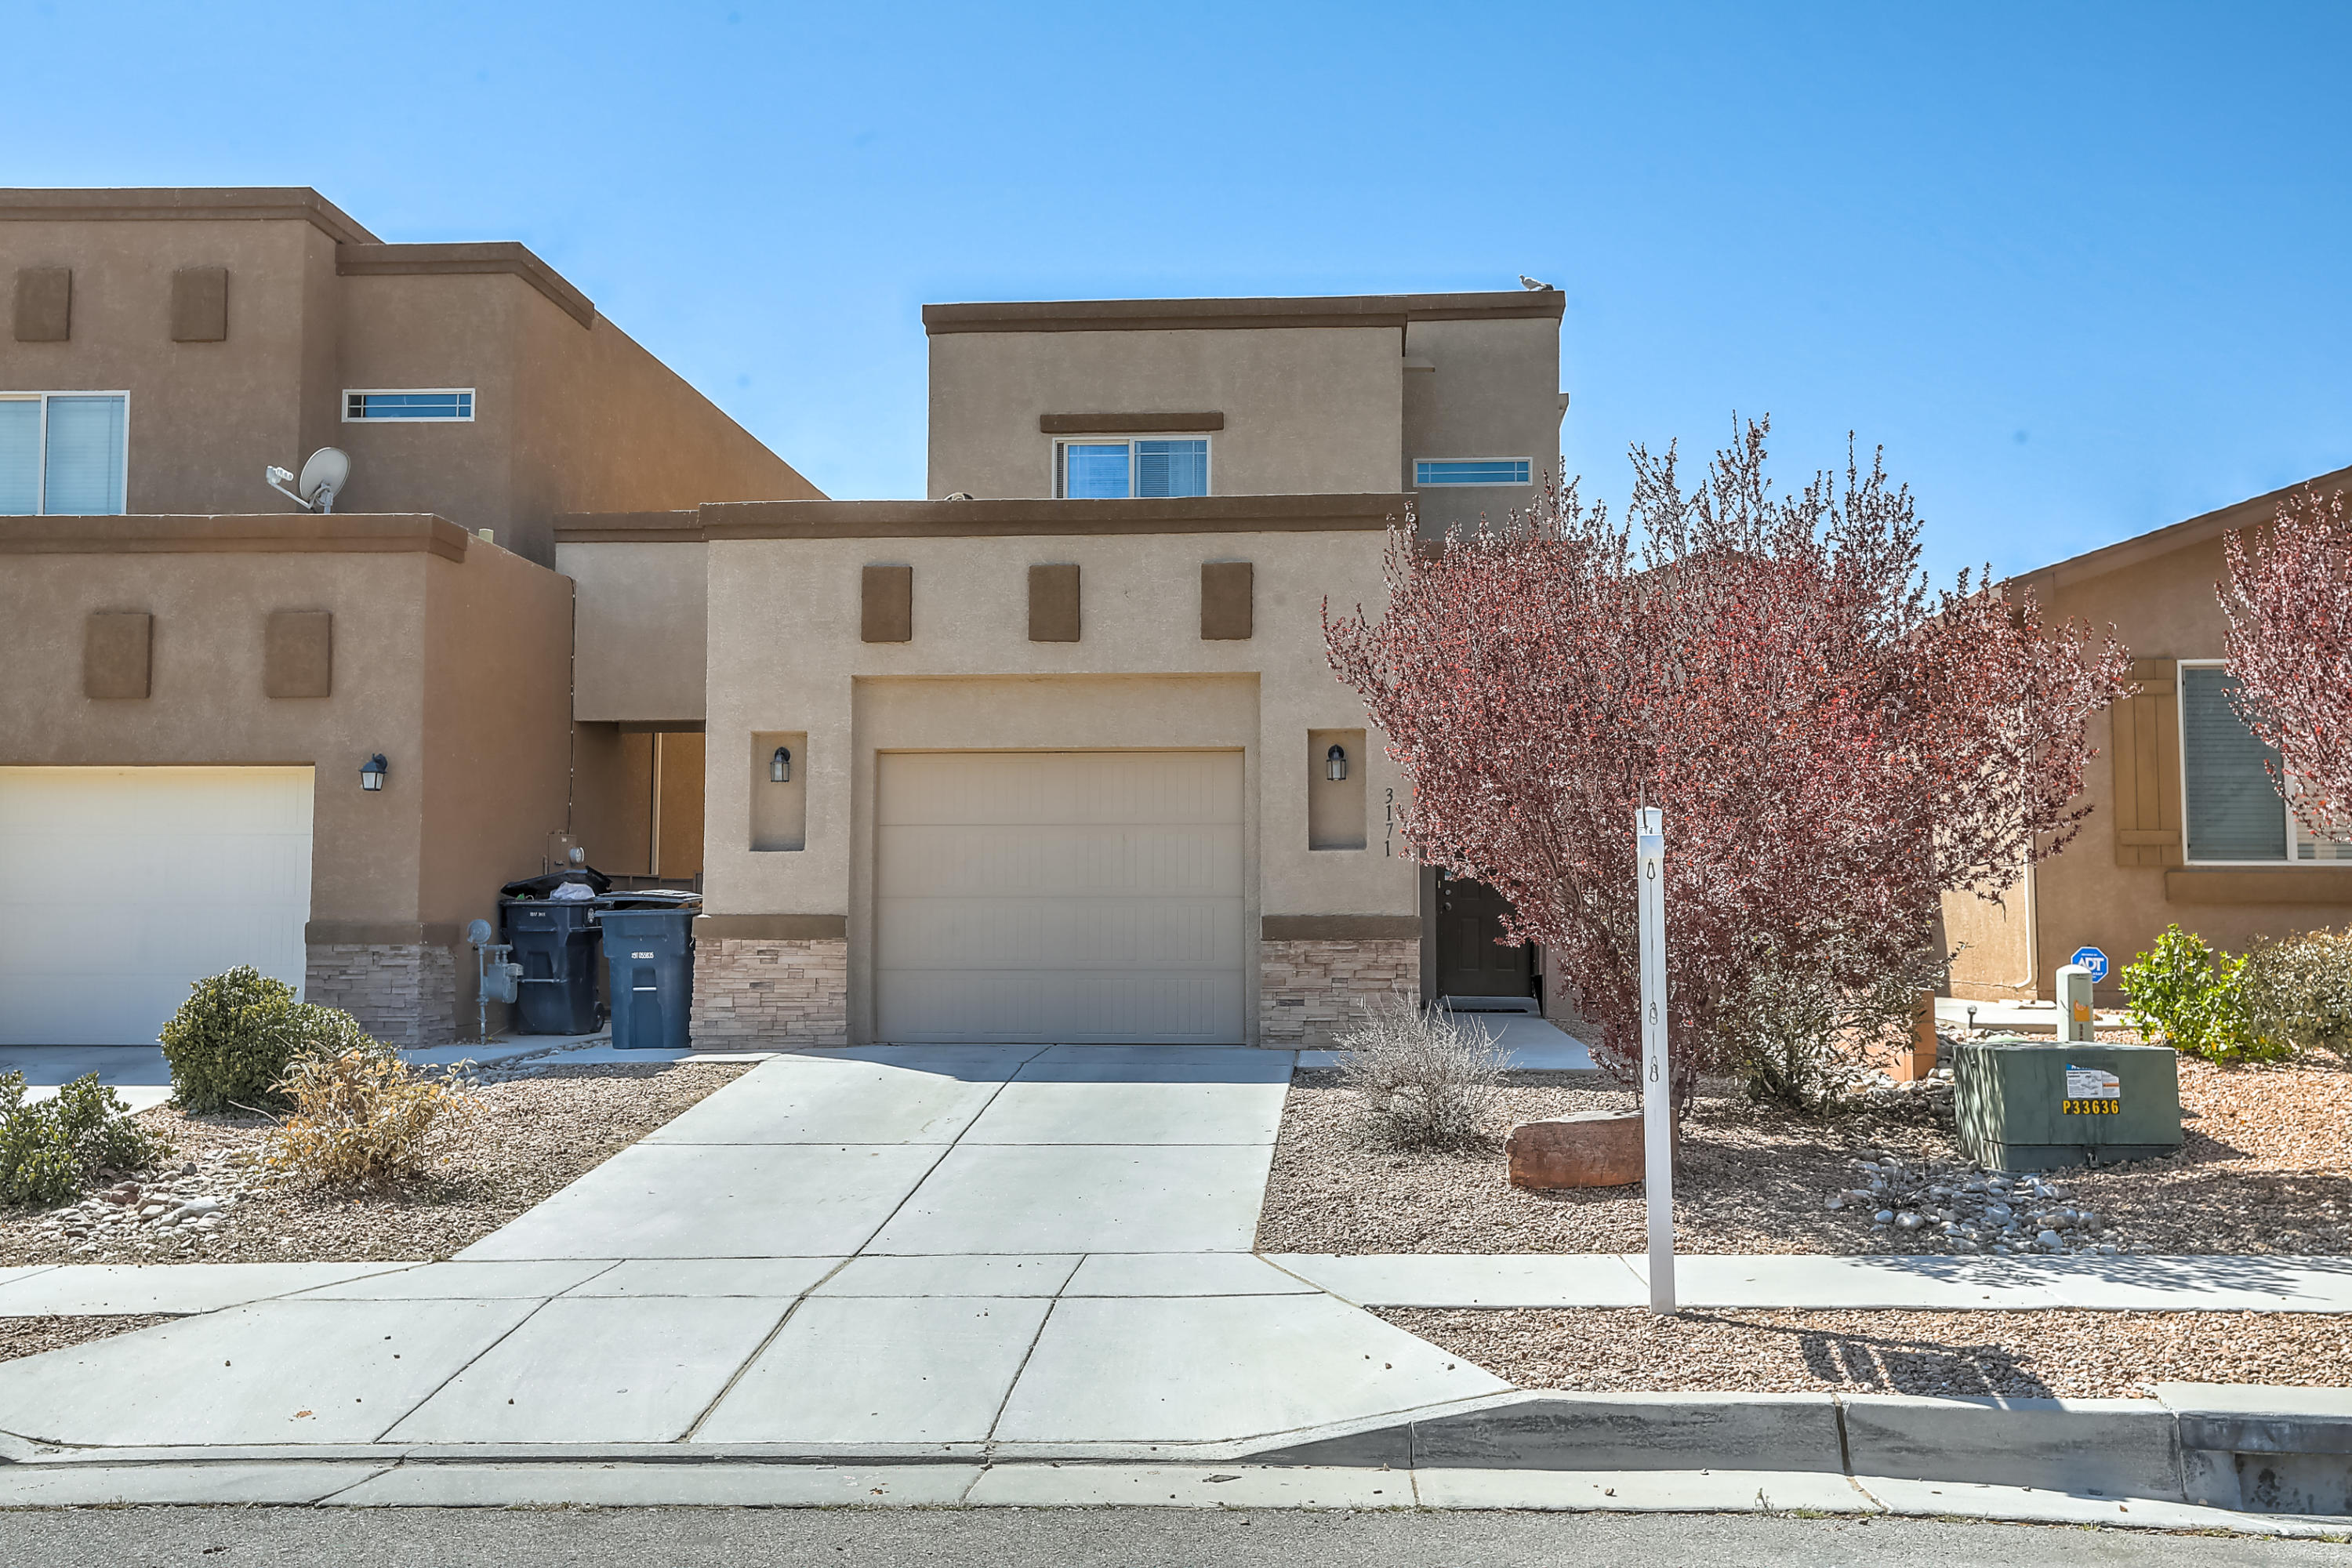 Beautiful D.R Horton home located in Sandstone Trails. Home features a large great room and gourmet kitchen with birch cabinets, spacious bedrooms, tankless water heater and much more!